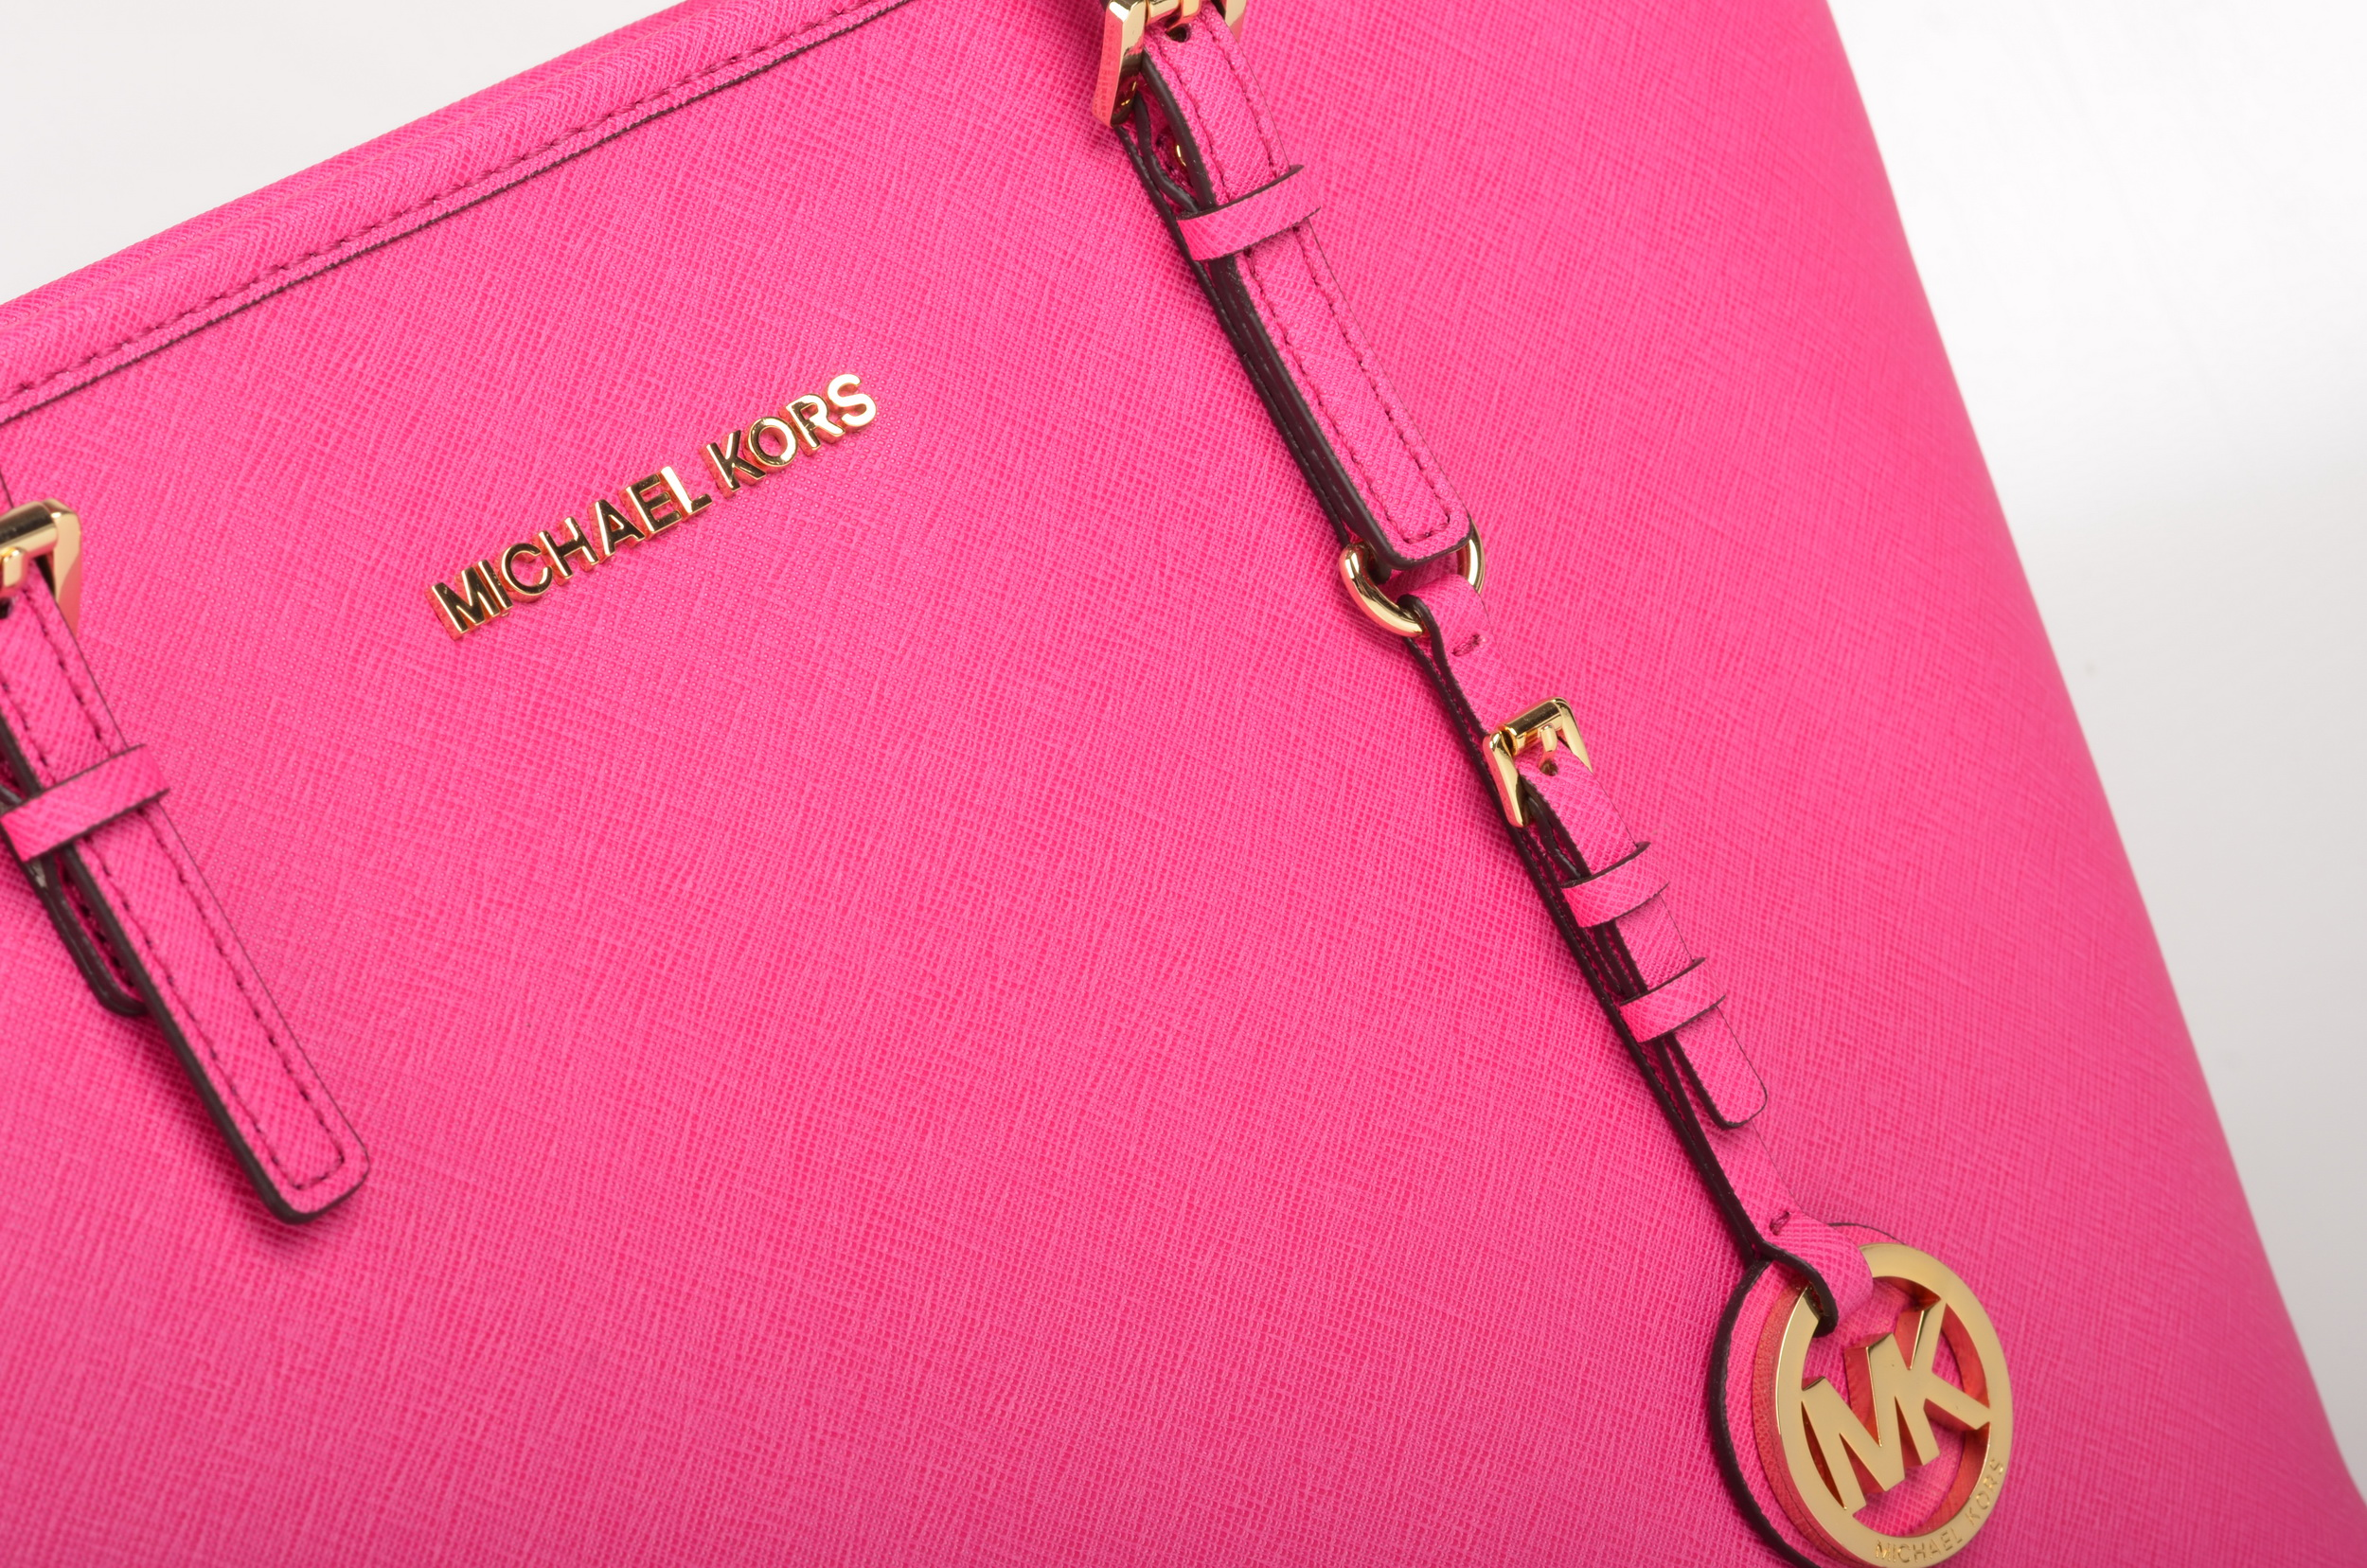 a170bd5c2cf4 Buy michael kors jet set pink   OFF67% Discounted